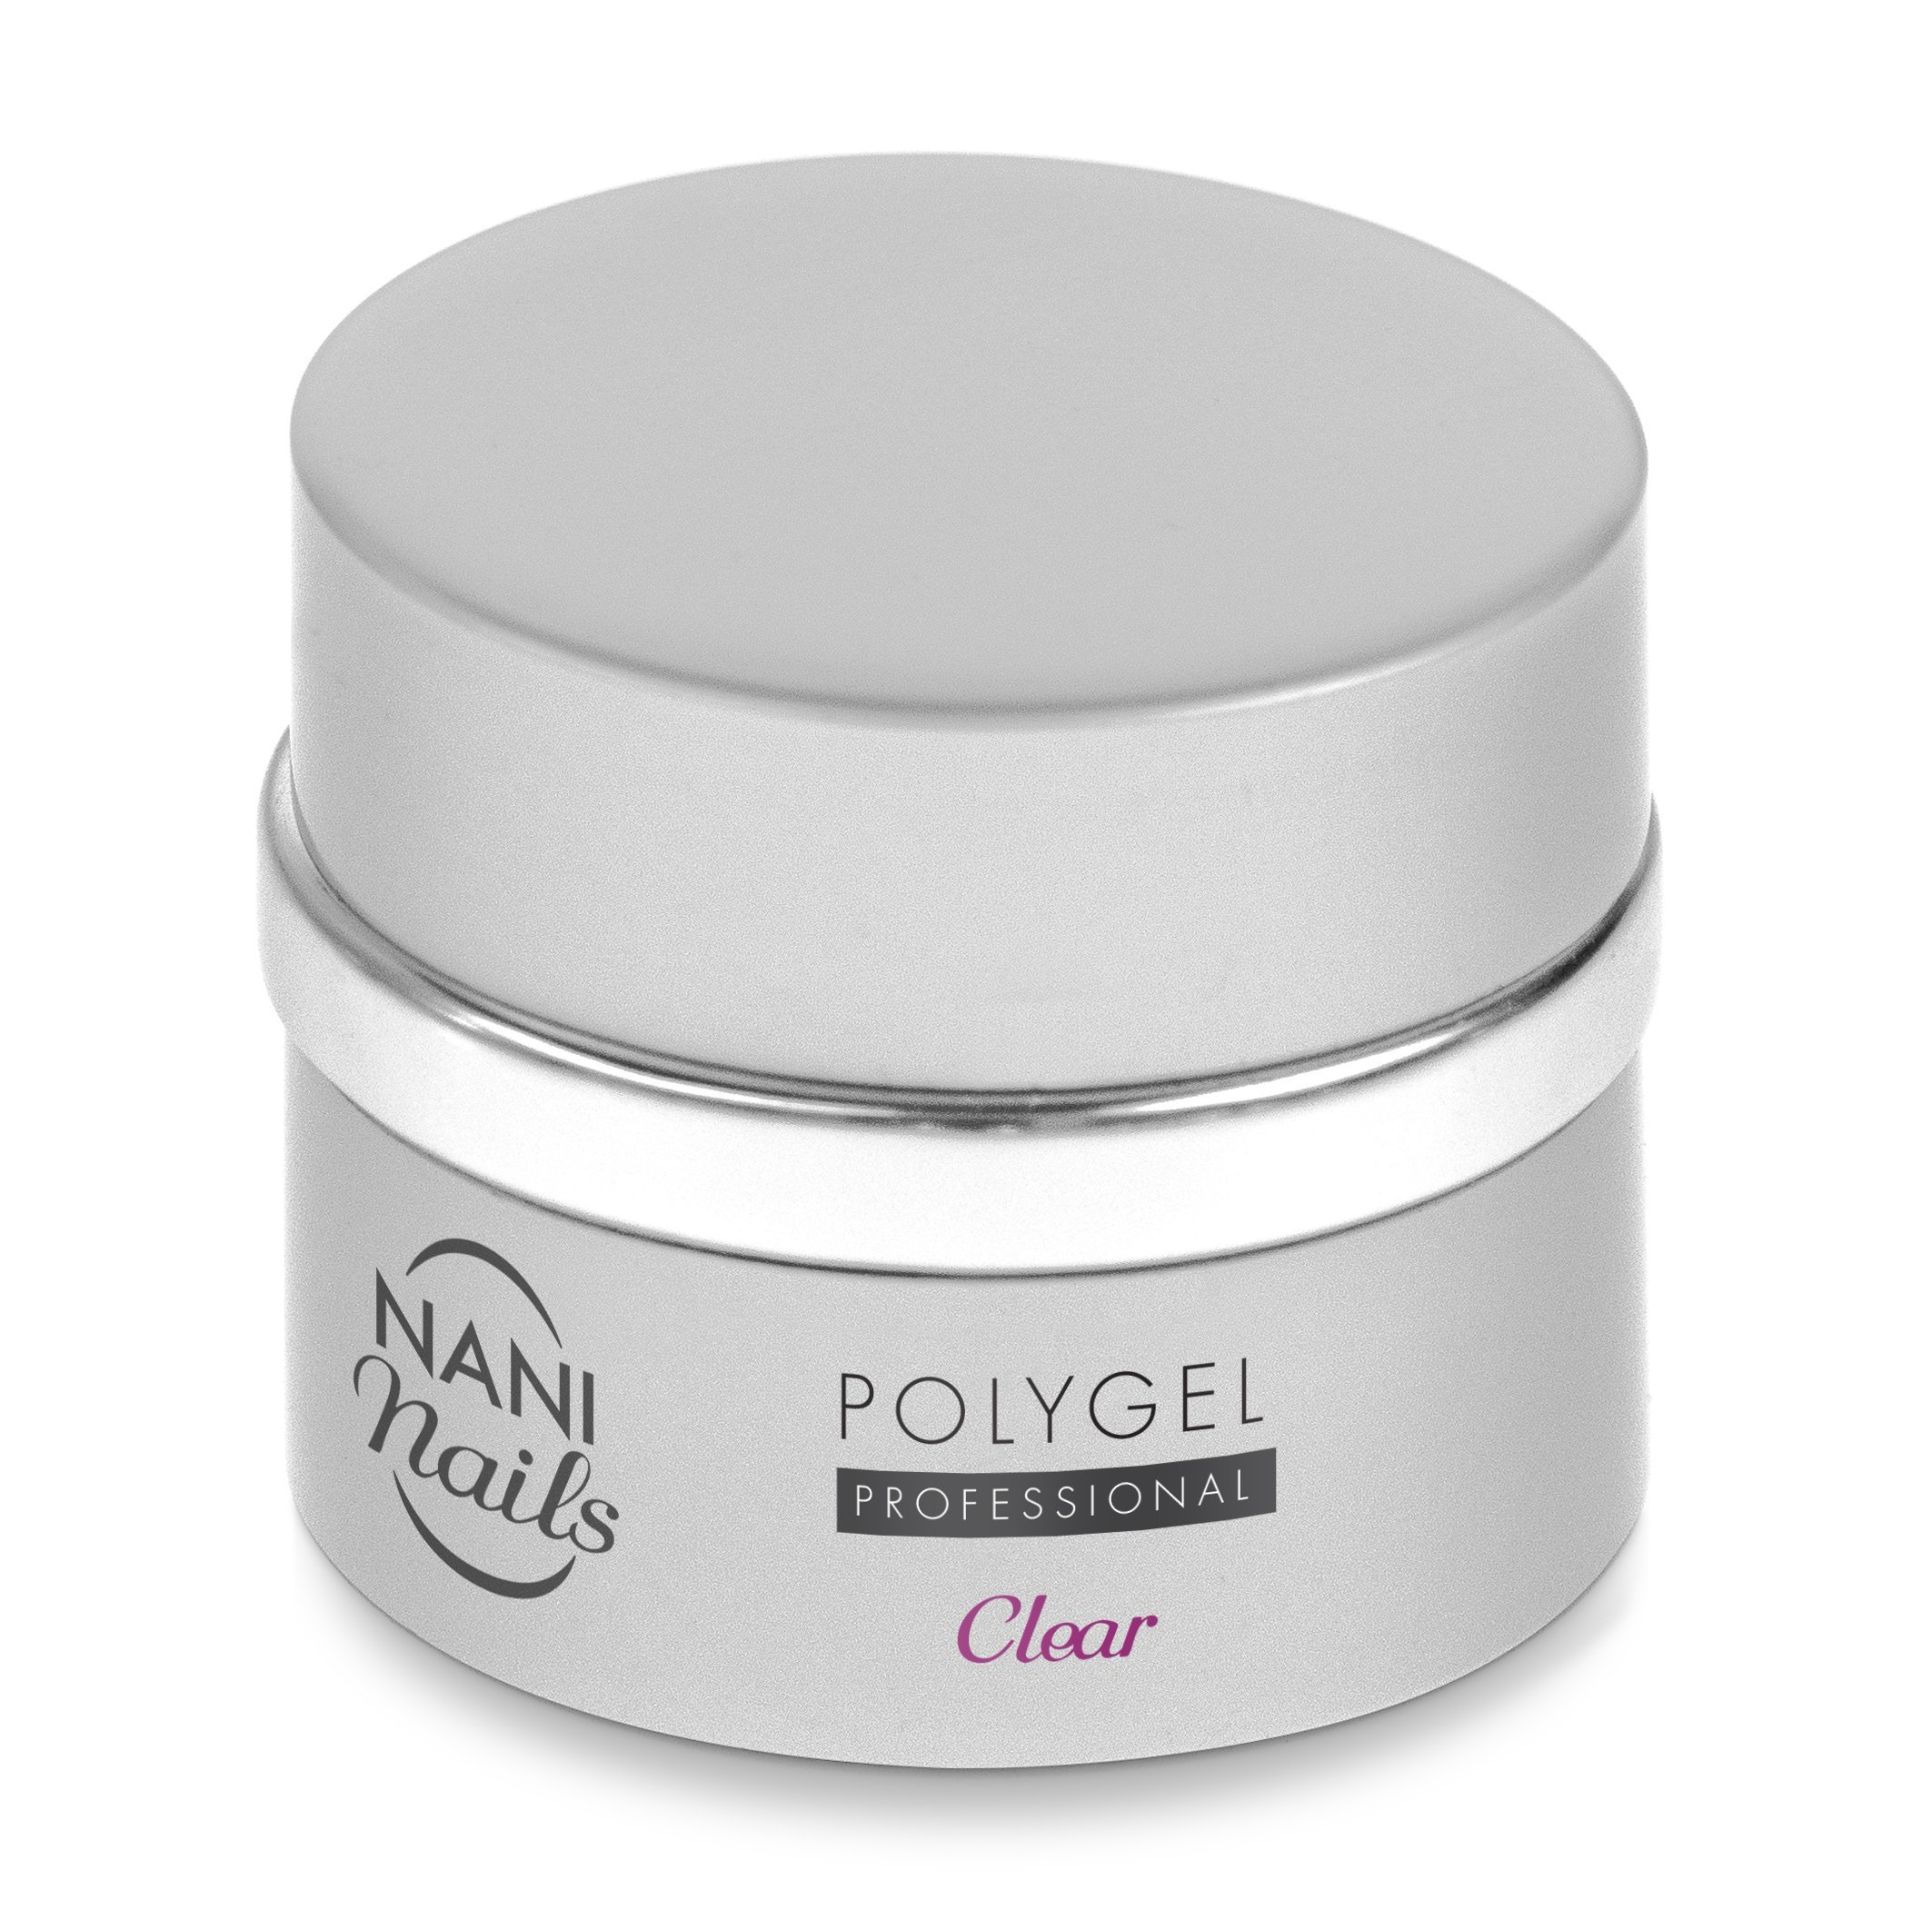 NANI polygél 30 ml - Clear